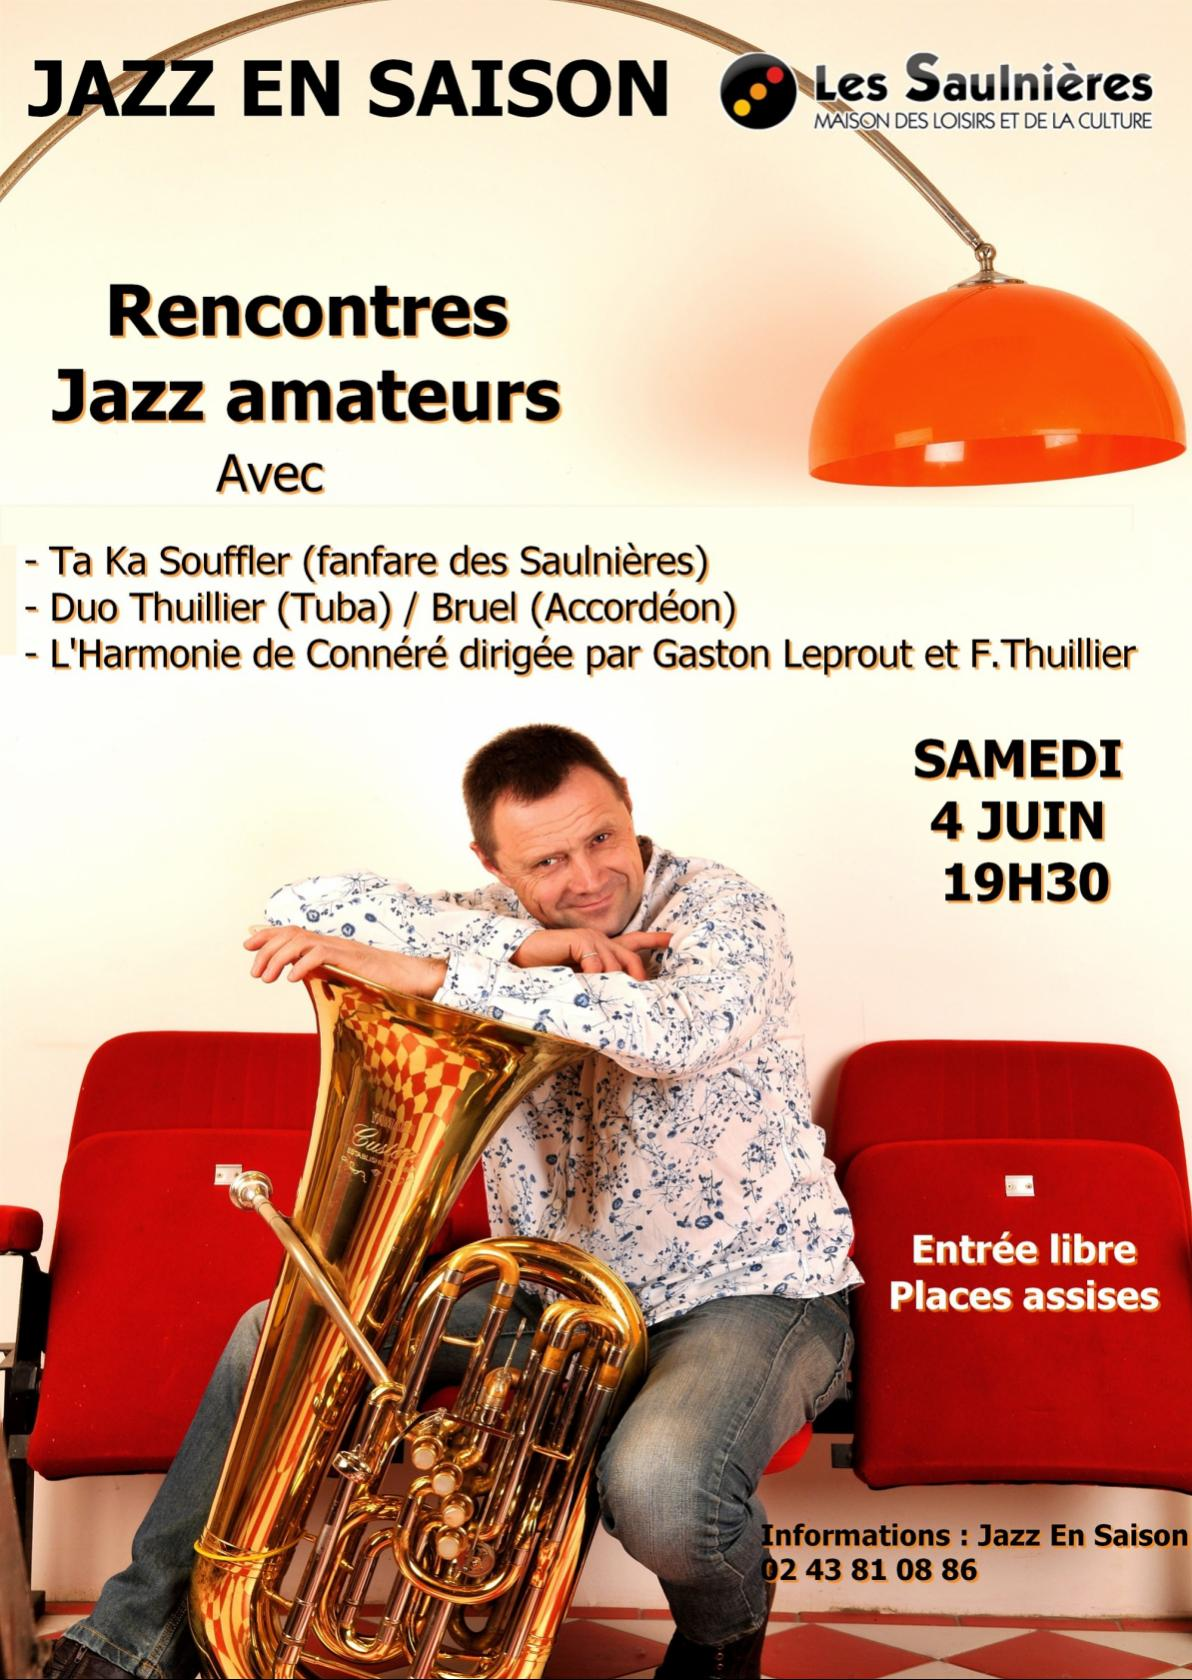 Rencontres Jazz amateurs Le Mans